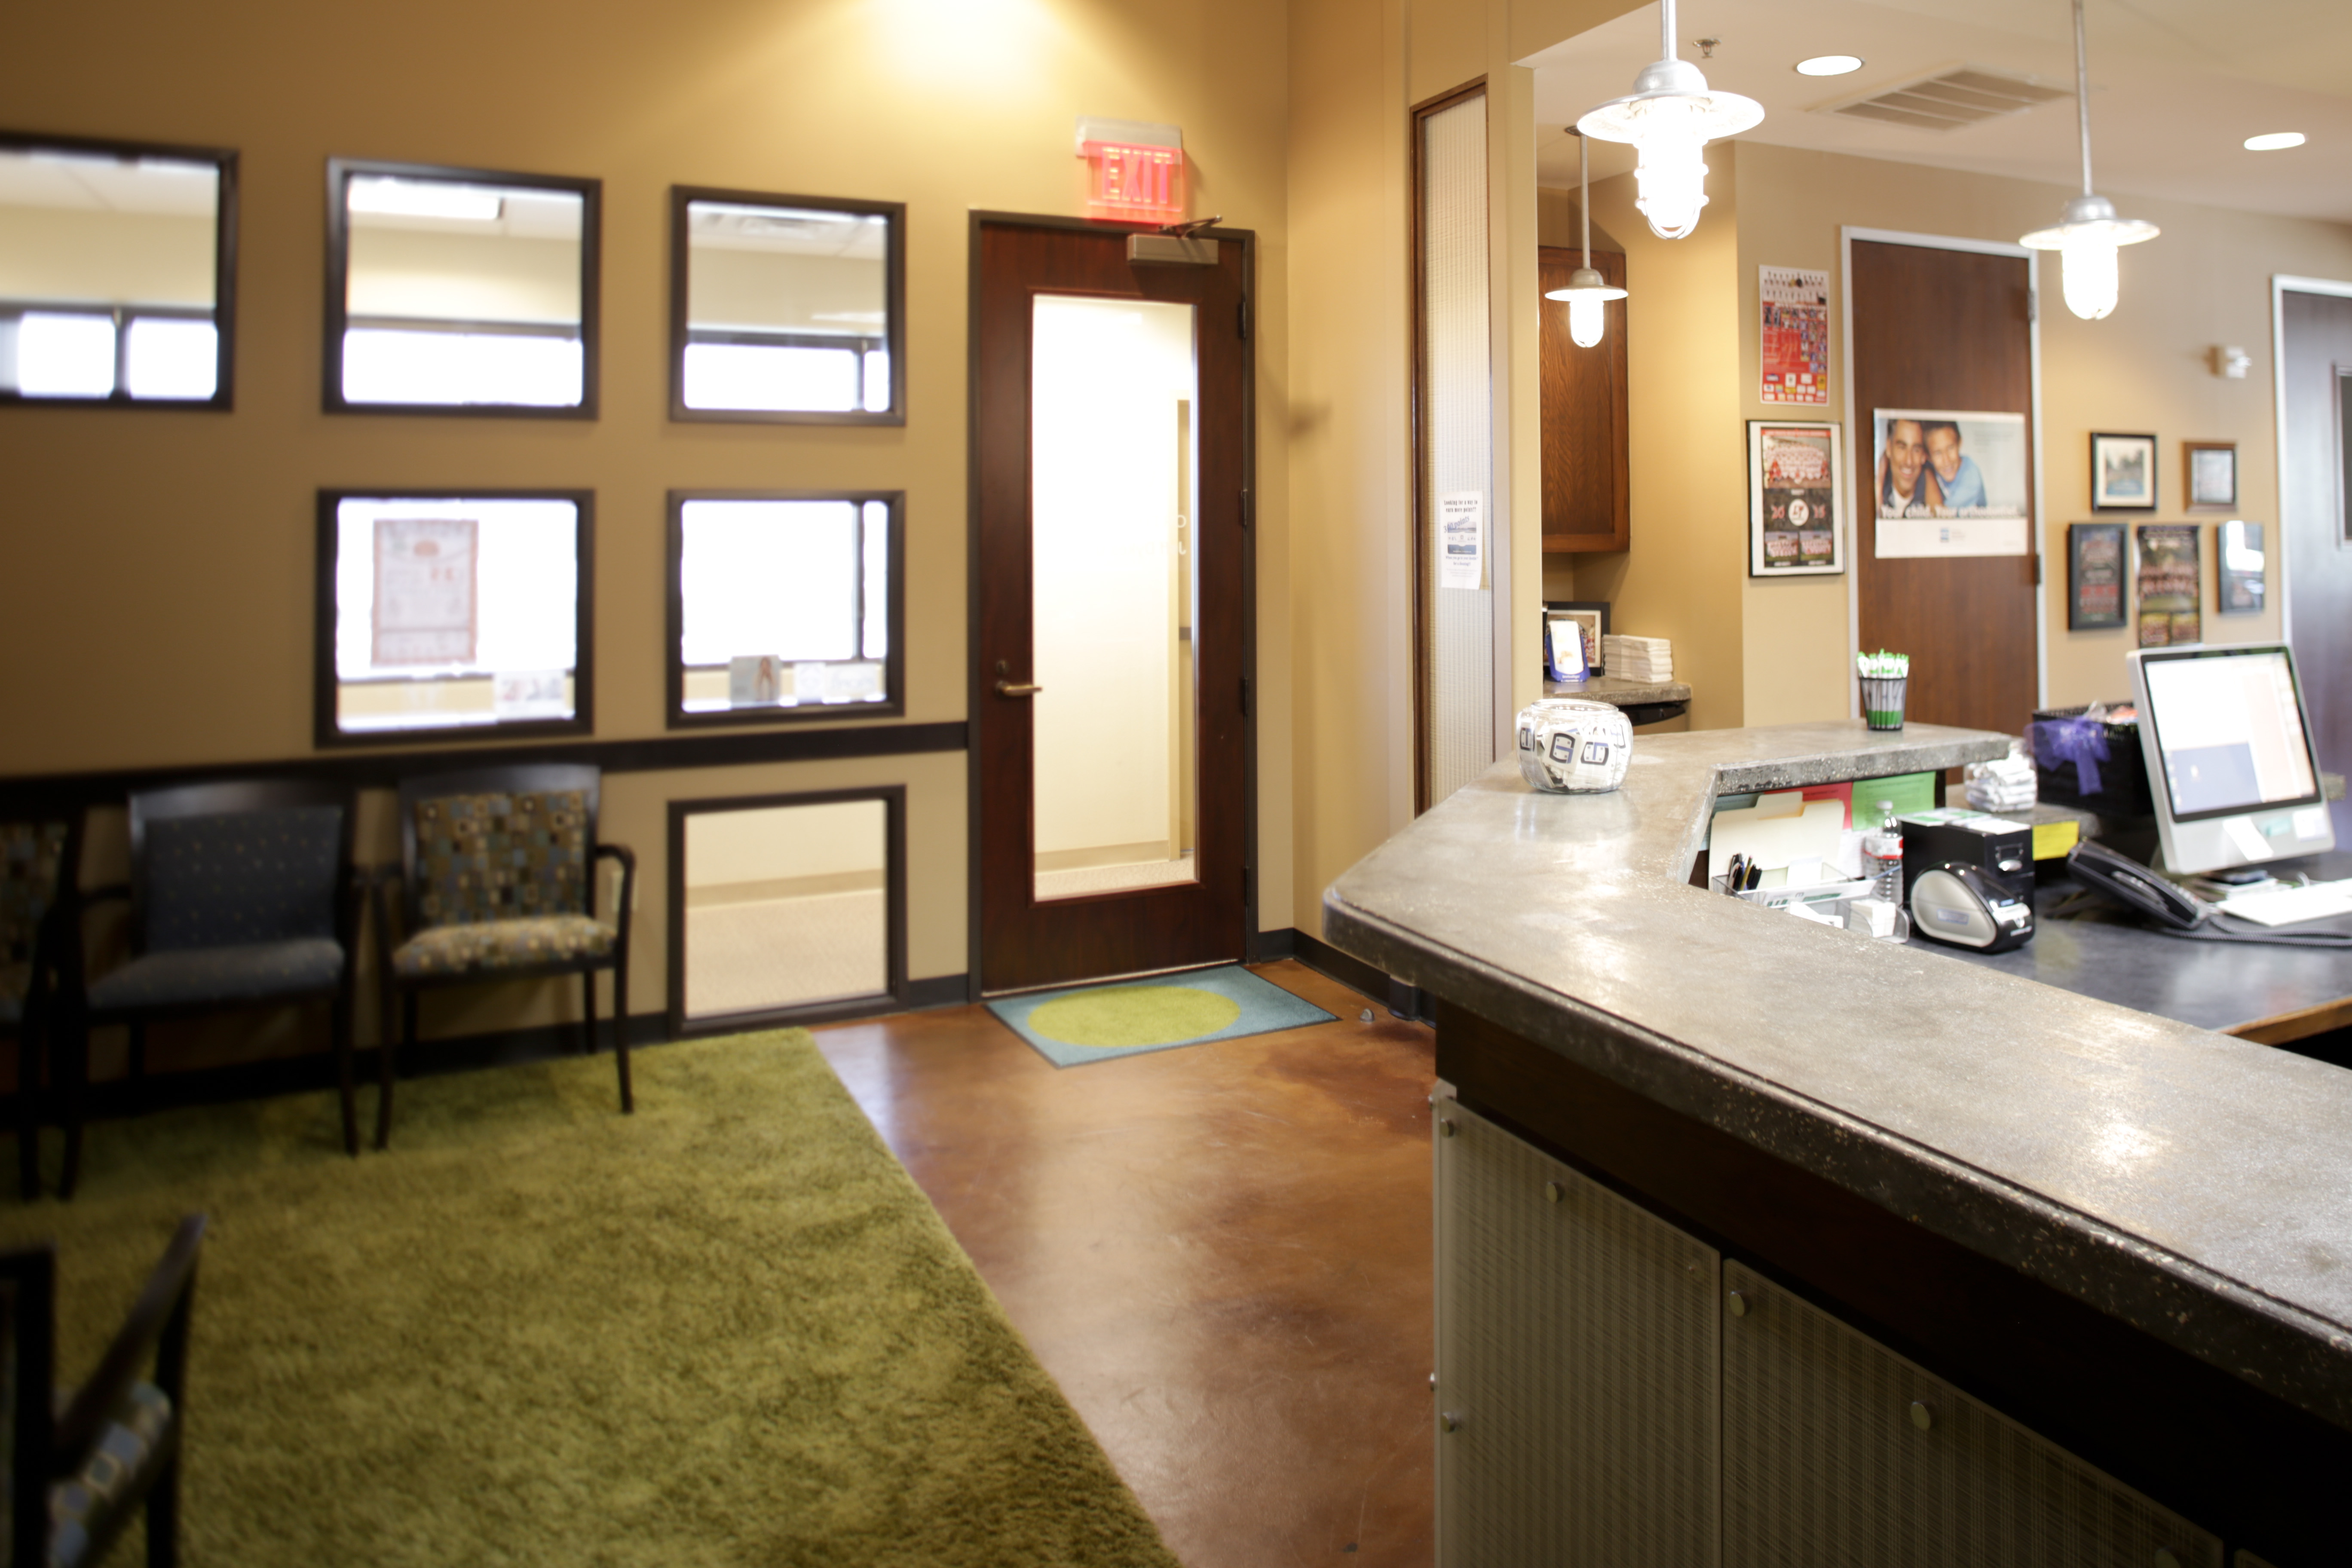 Lakeway Orthodontics | Orthodontists in 1007 Ranch Rd 620 S - Austin TX - Reviews - Photos - Phone Number